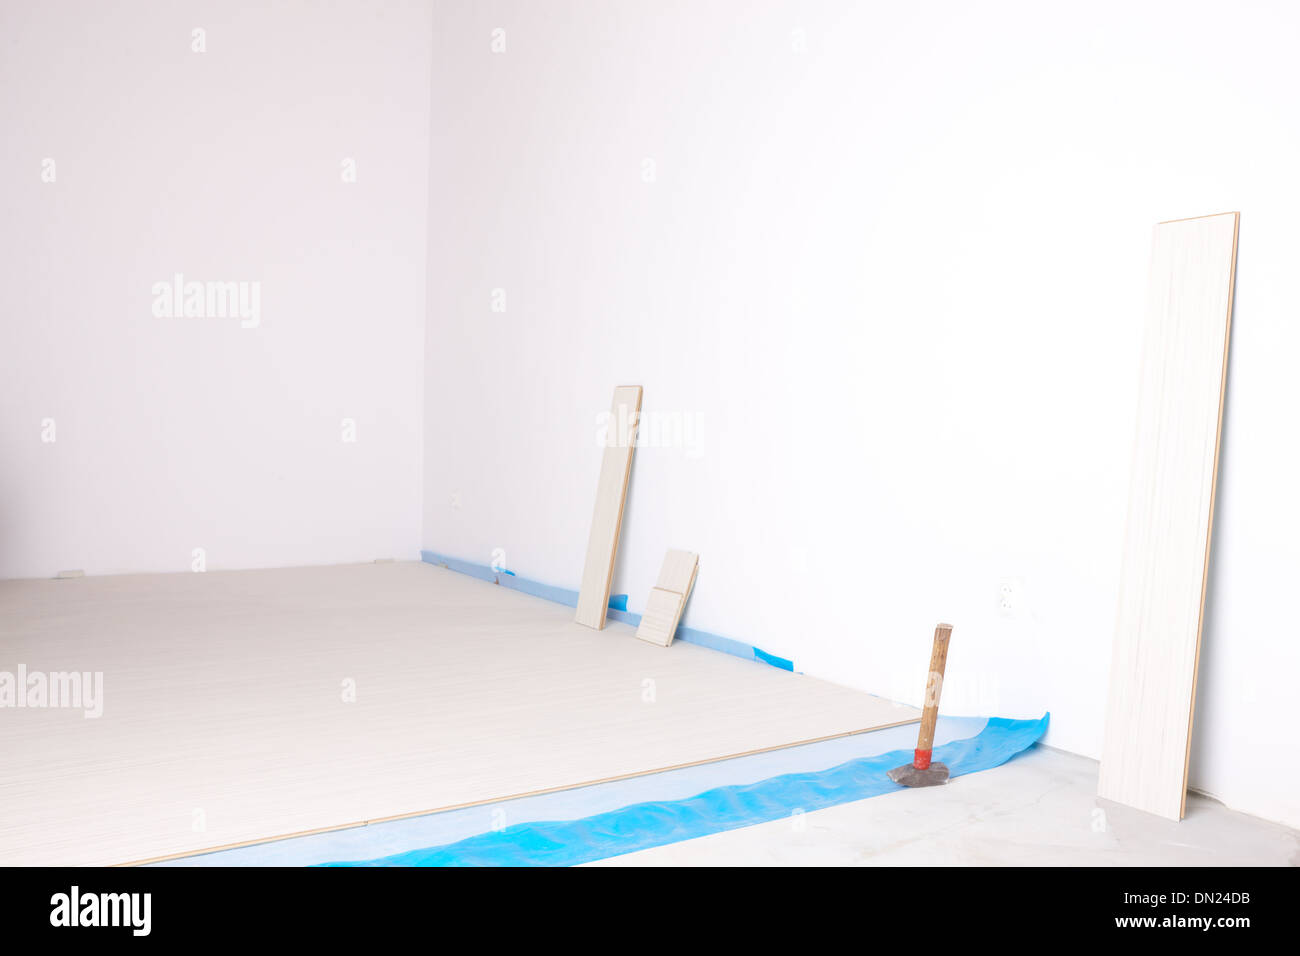 Empty room during renovation with laminated flooring, whithe walls and workers tools - Stock Image